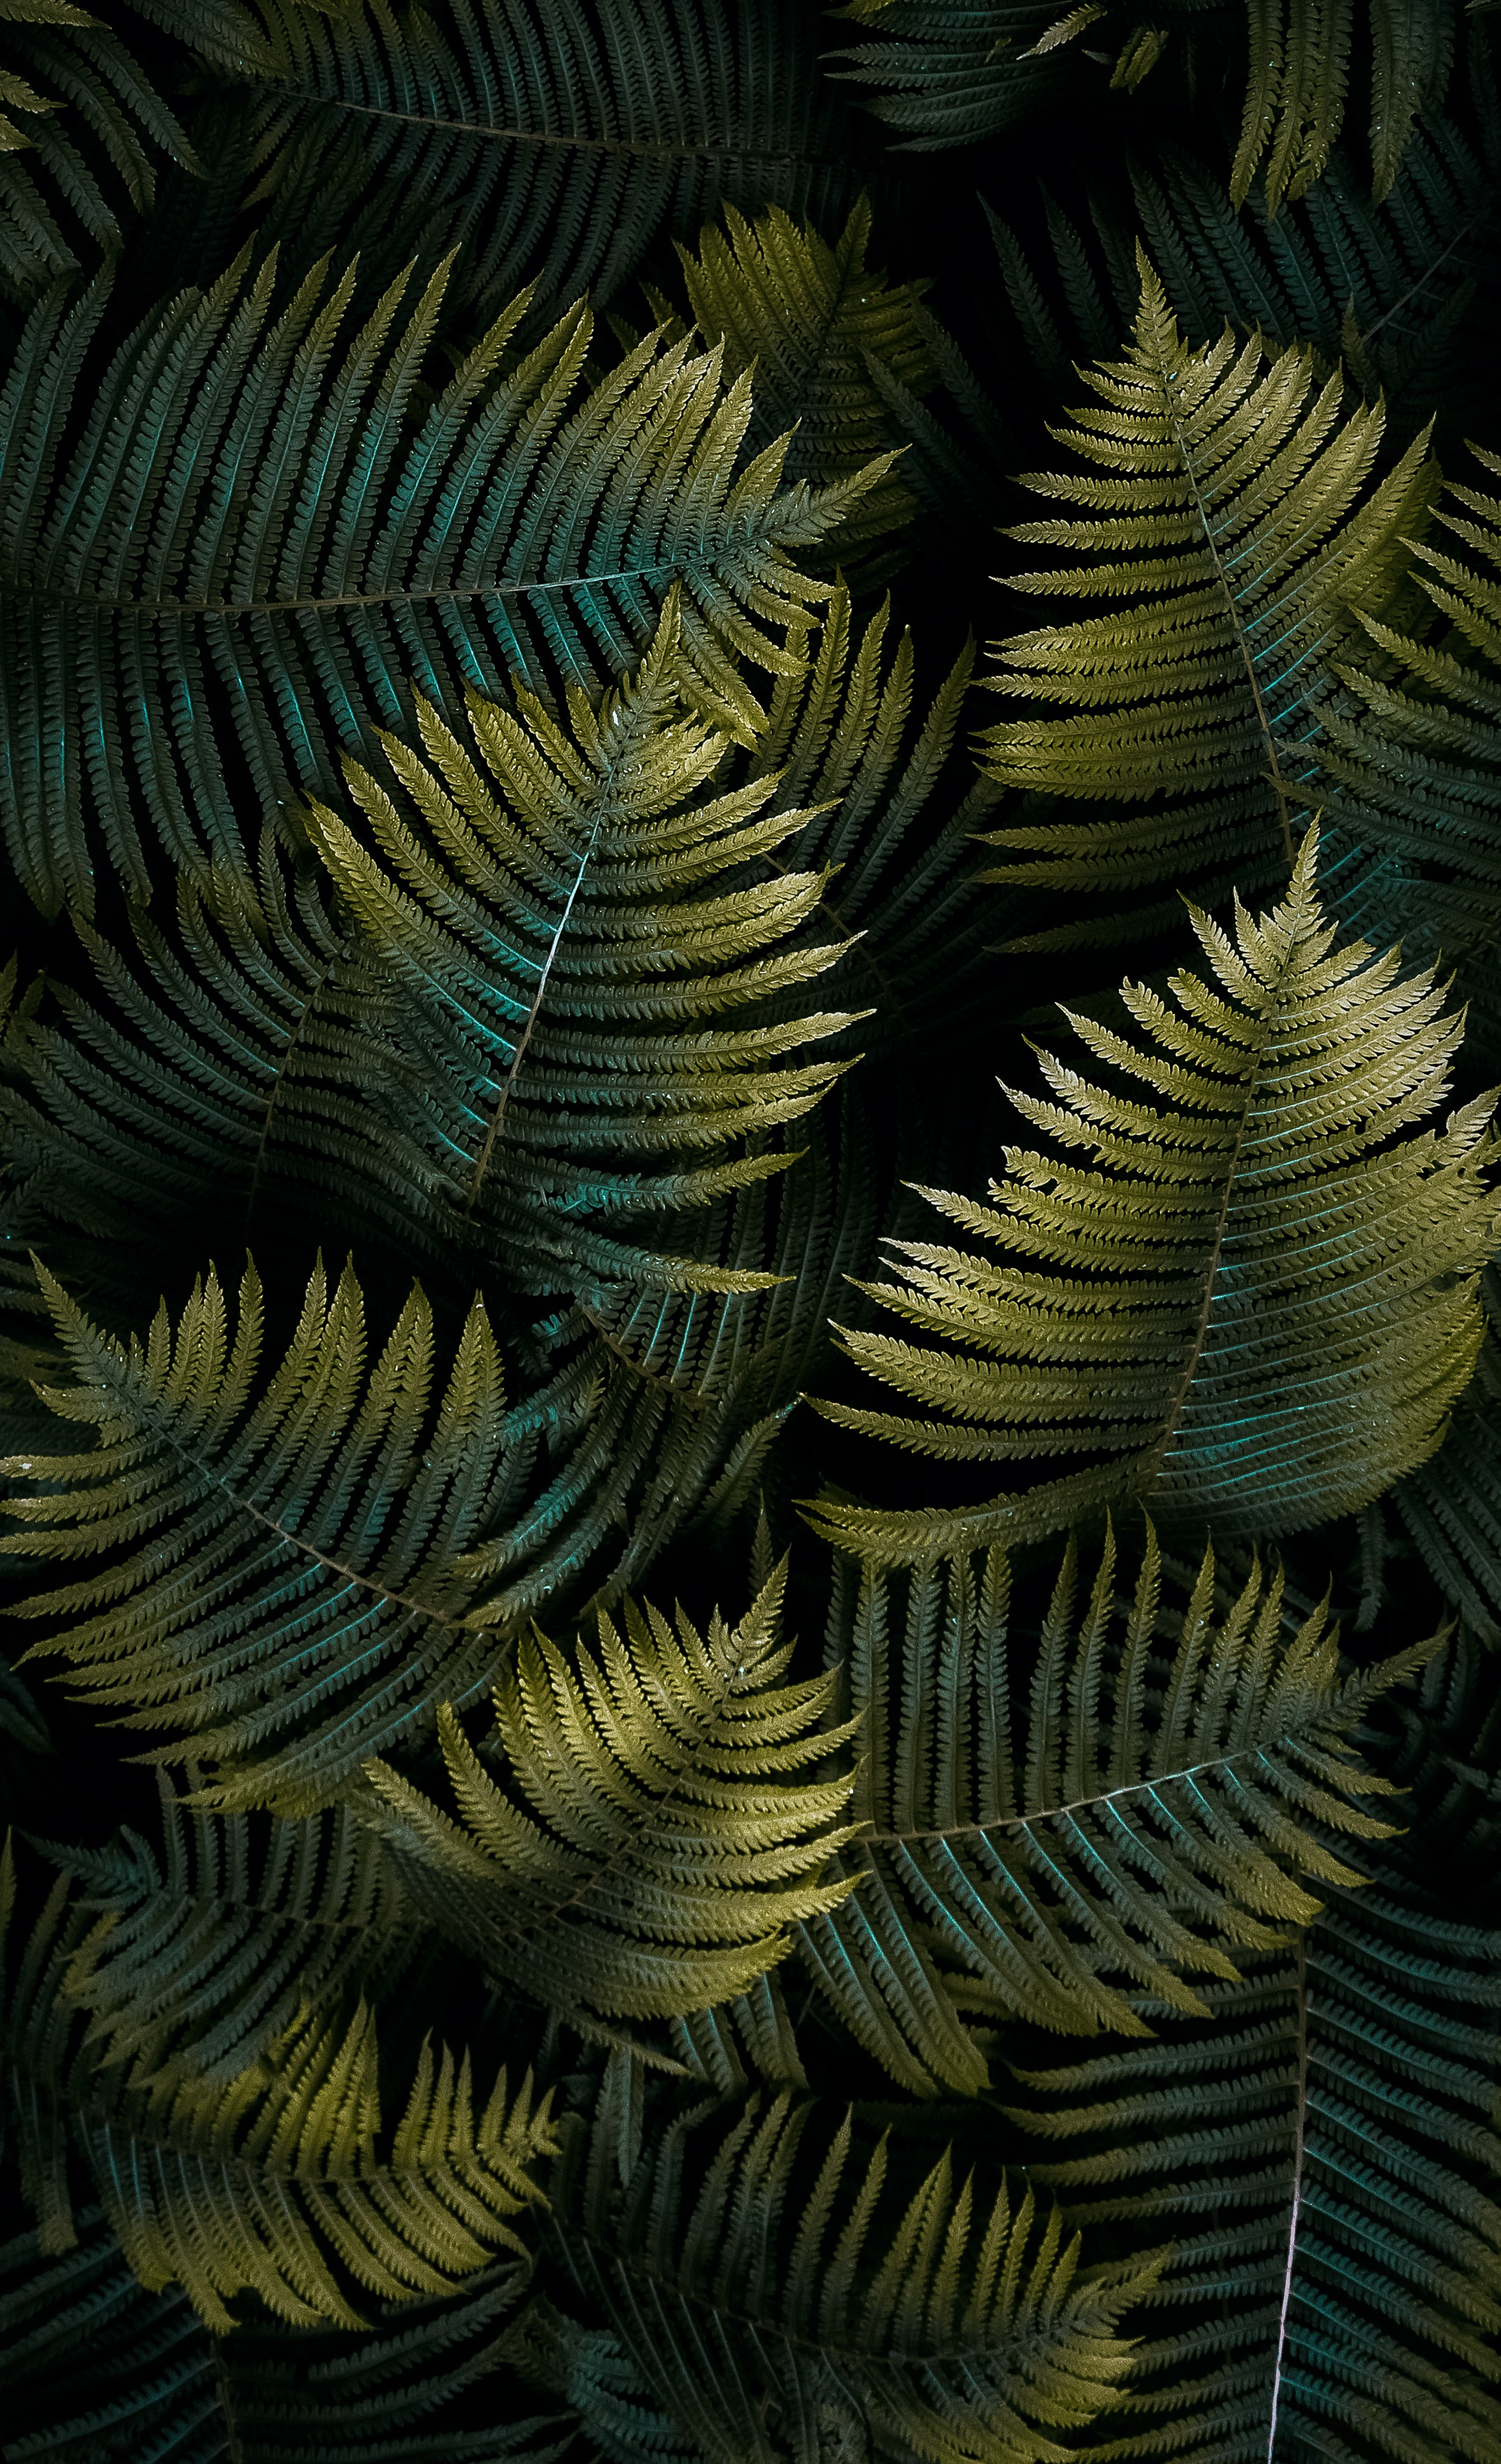 60198 download wallpaper Nature, Macro, Fern, Sheet, Leaf screensavers and pictures for free